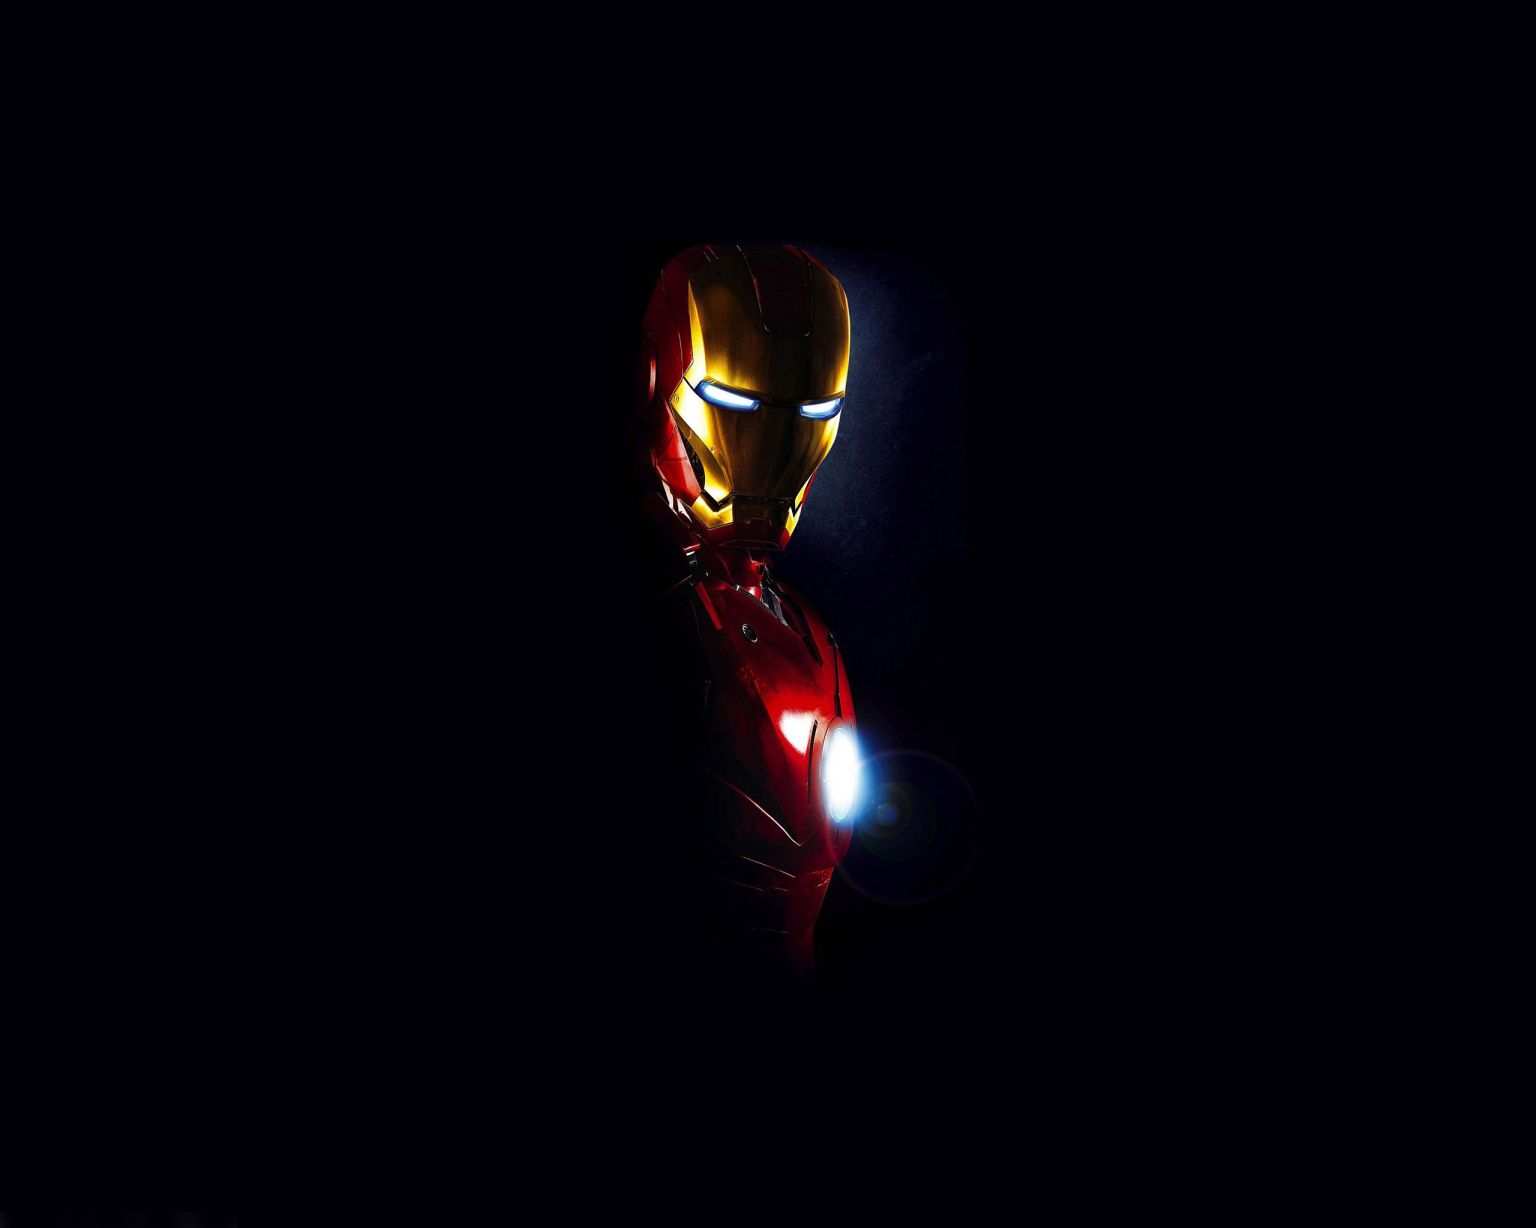 Iron Man Mask Hd Image For Android 1 Movies Pinterest Iron